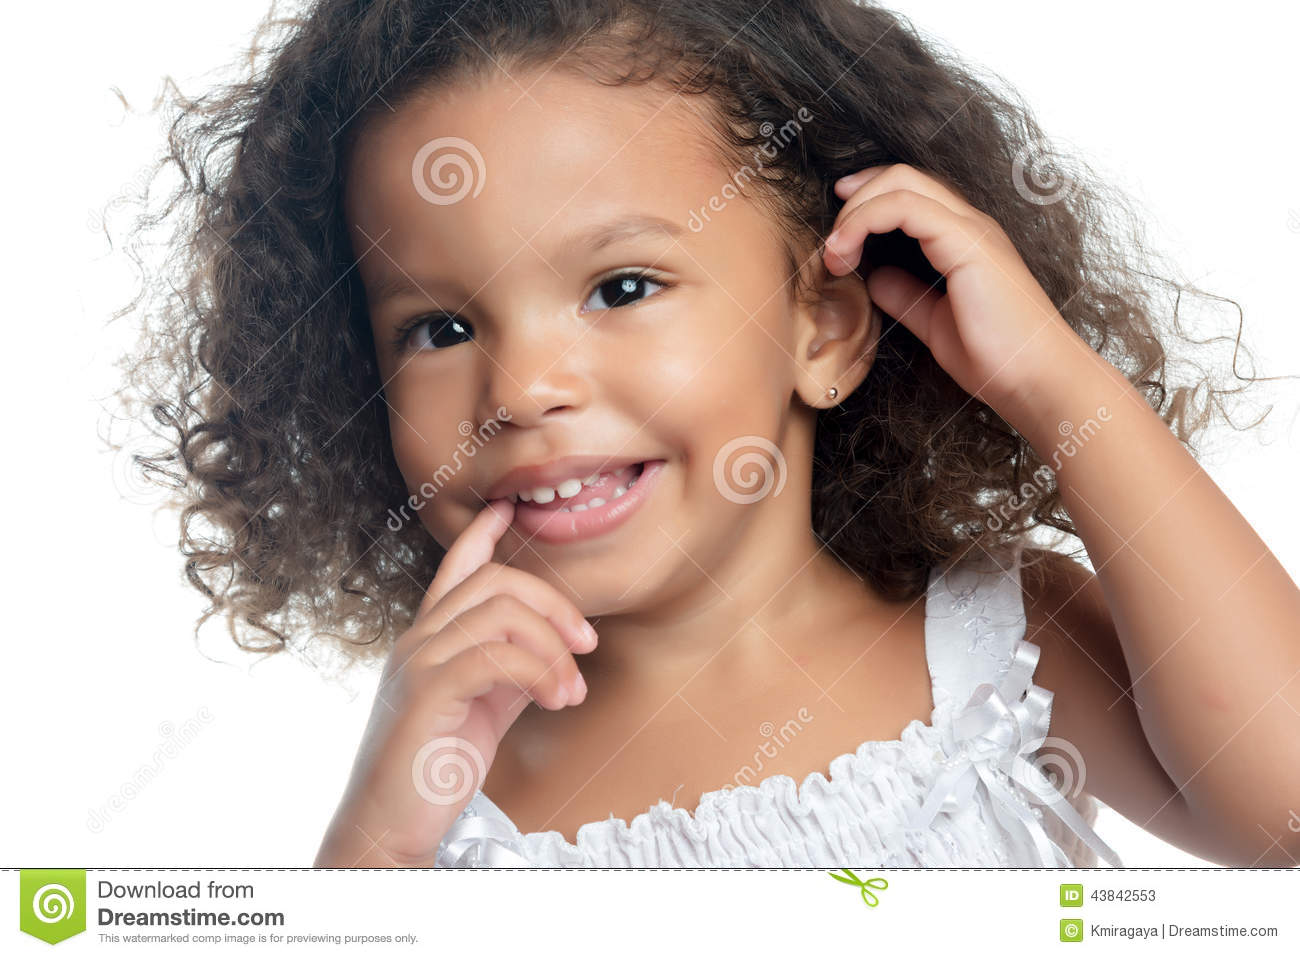 little girl with an afro hairstyle stock photo - image: 43842553